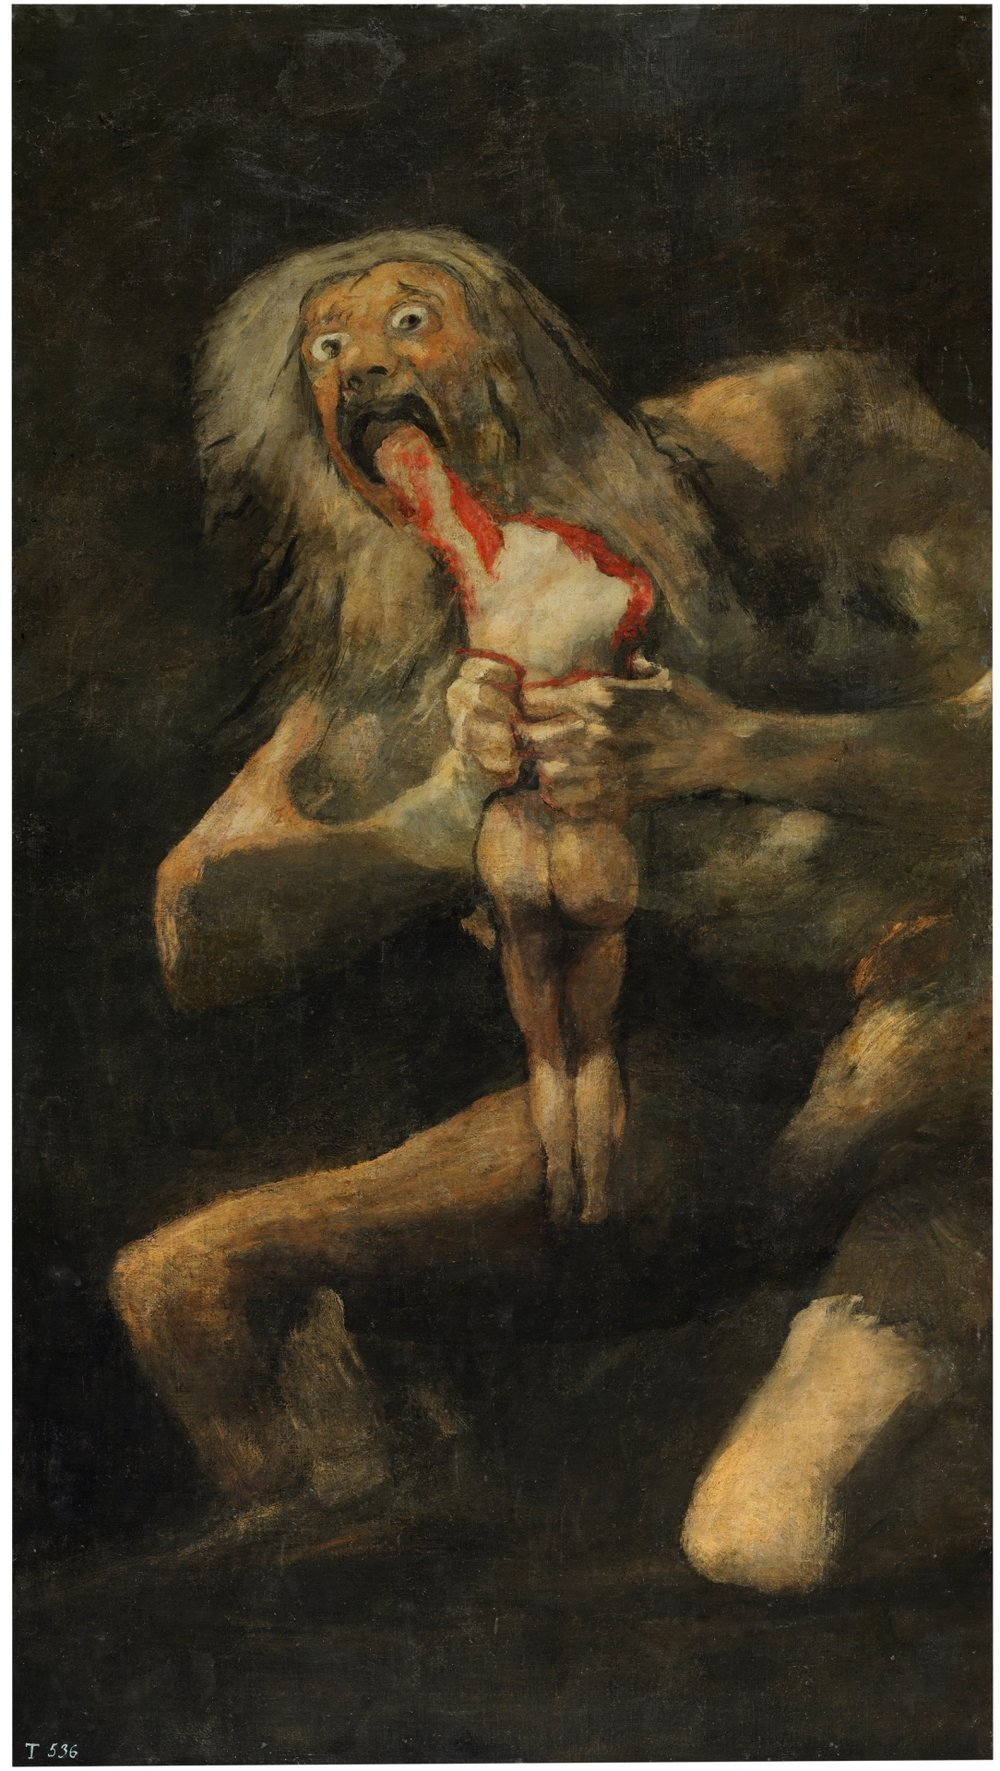 Saturn Devouring His Son by Goya. Prado Museum